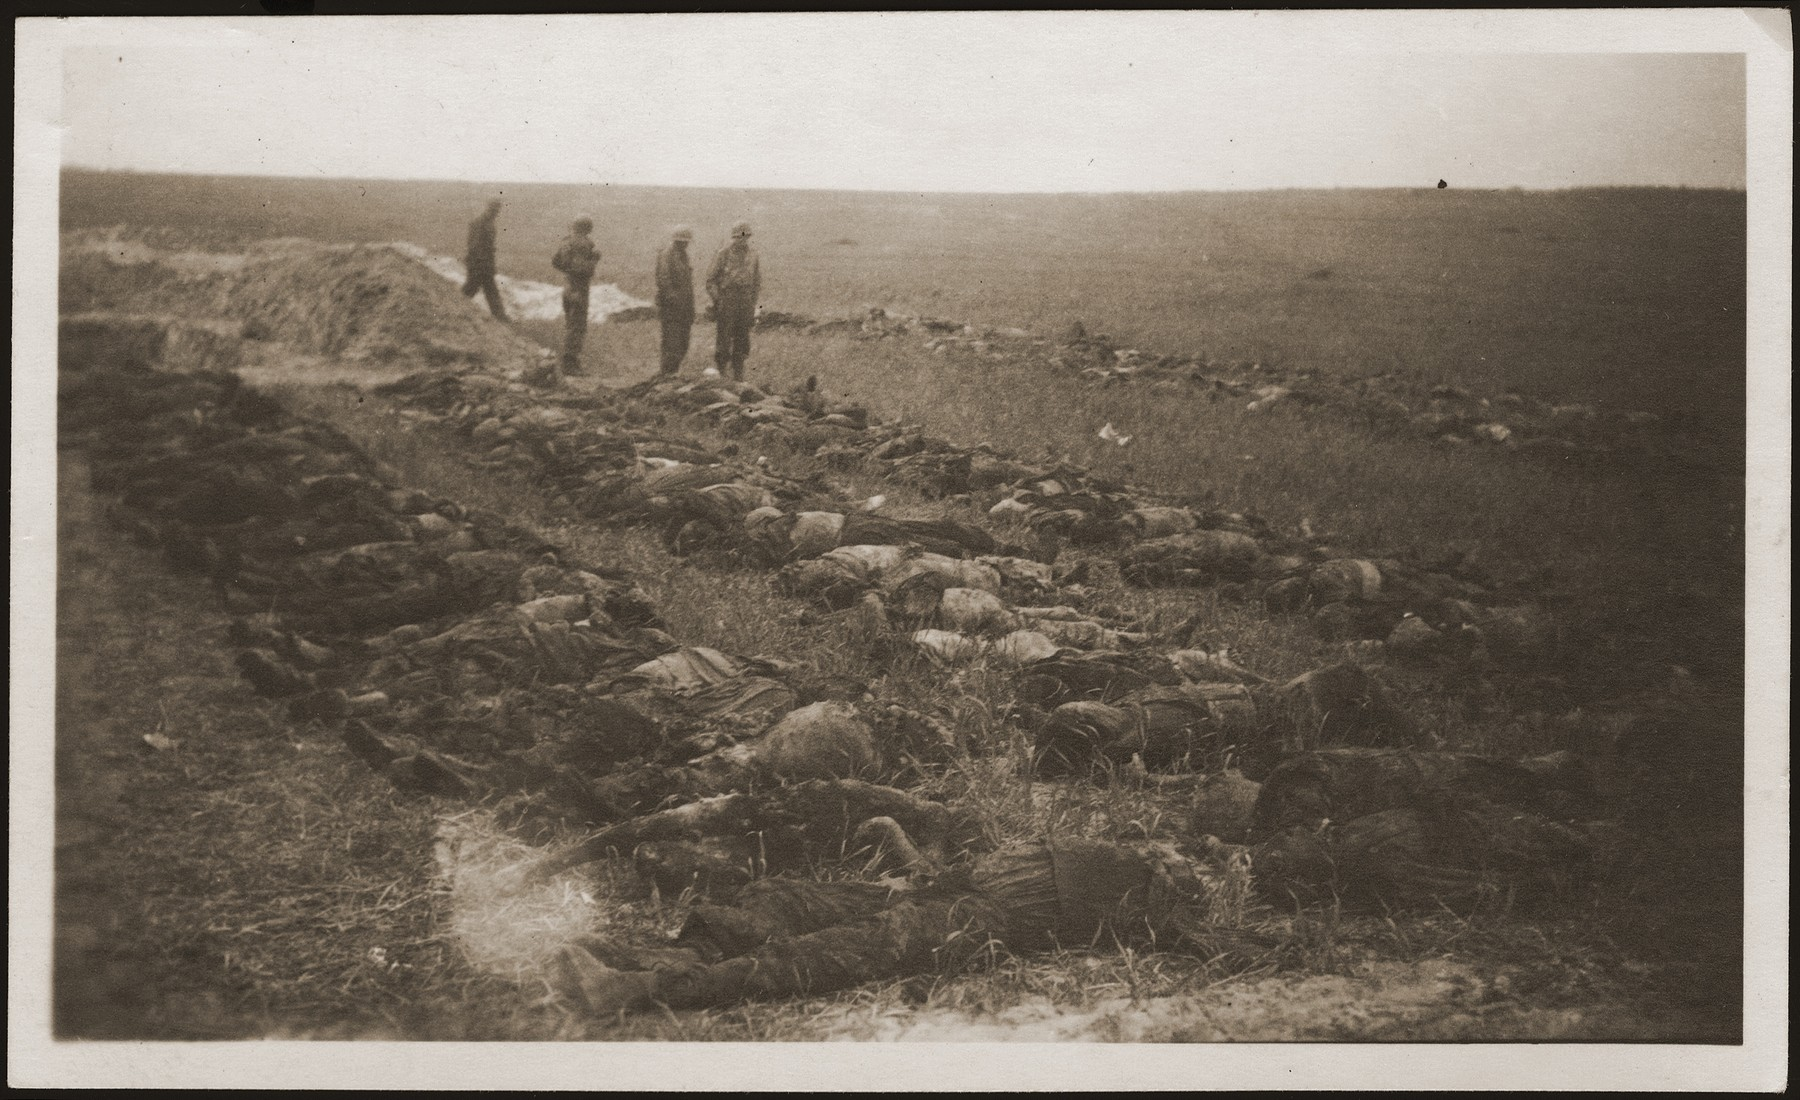 American soldiers stand among the corpses of concentration camp prisoners killed by the SS in a barn just outside of Gardelegen, which have been laid out for burial.